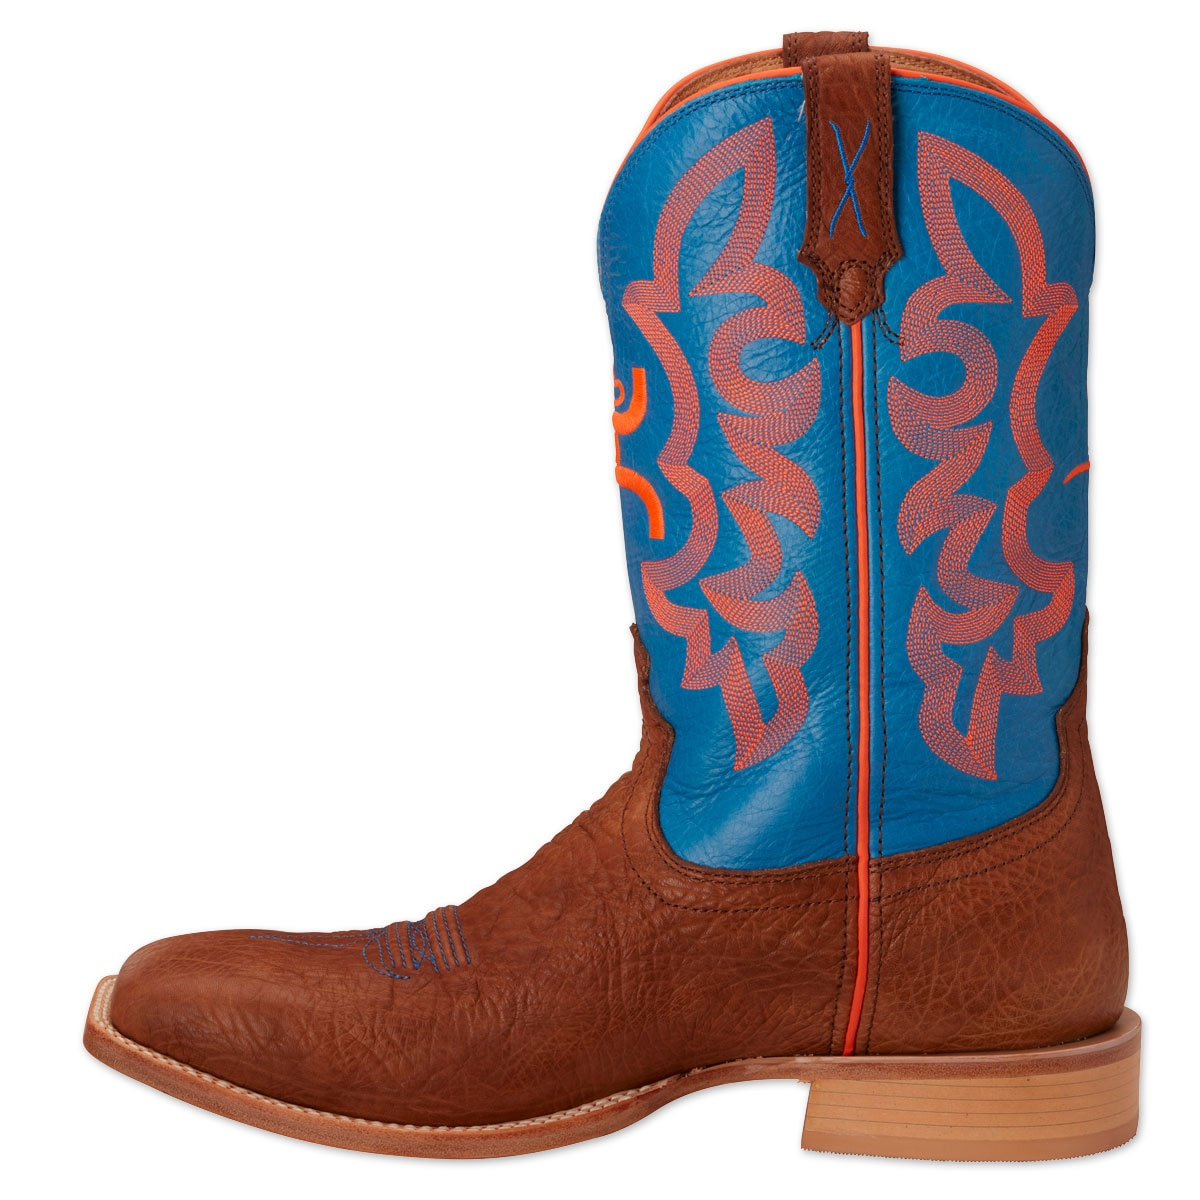 25951b79a79 Twisted X Men's Hooey Boots